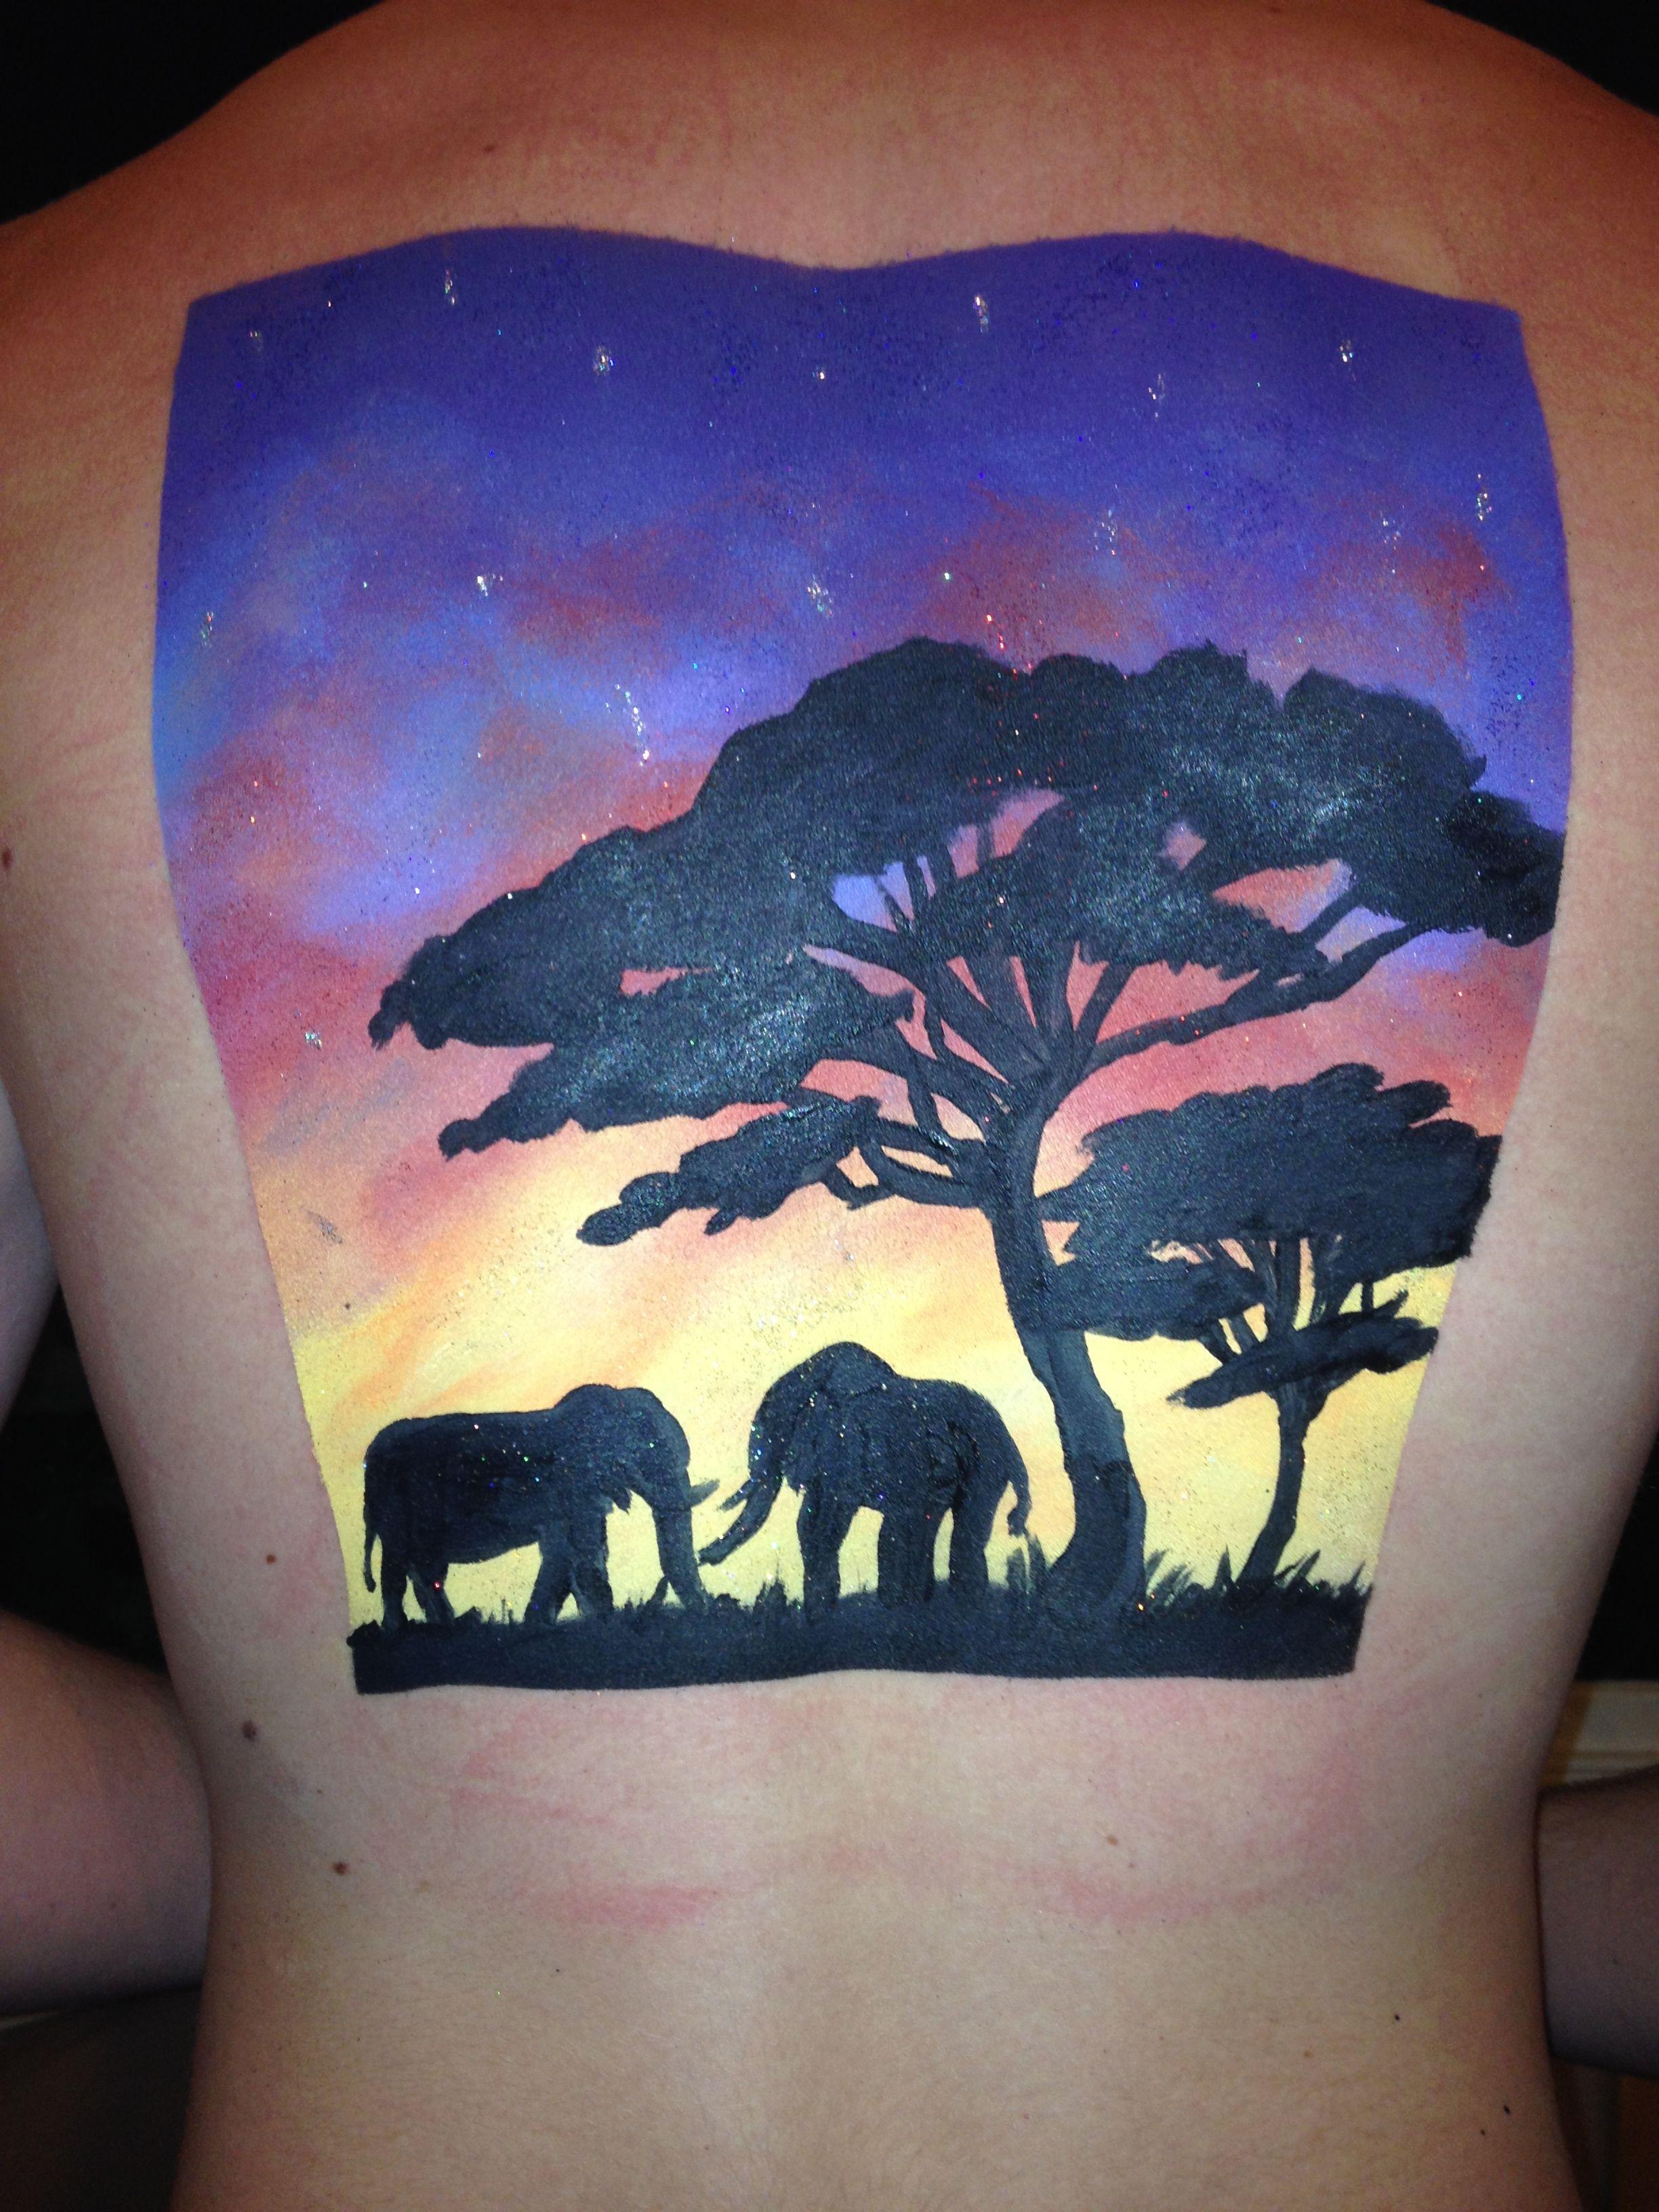 Facepaint on the back, African sunset silhouette